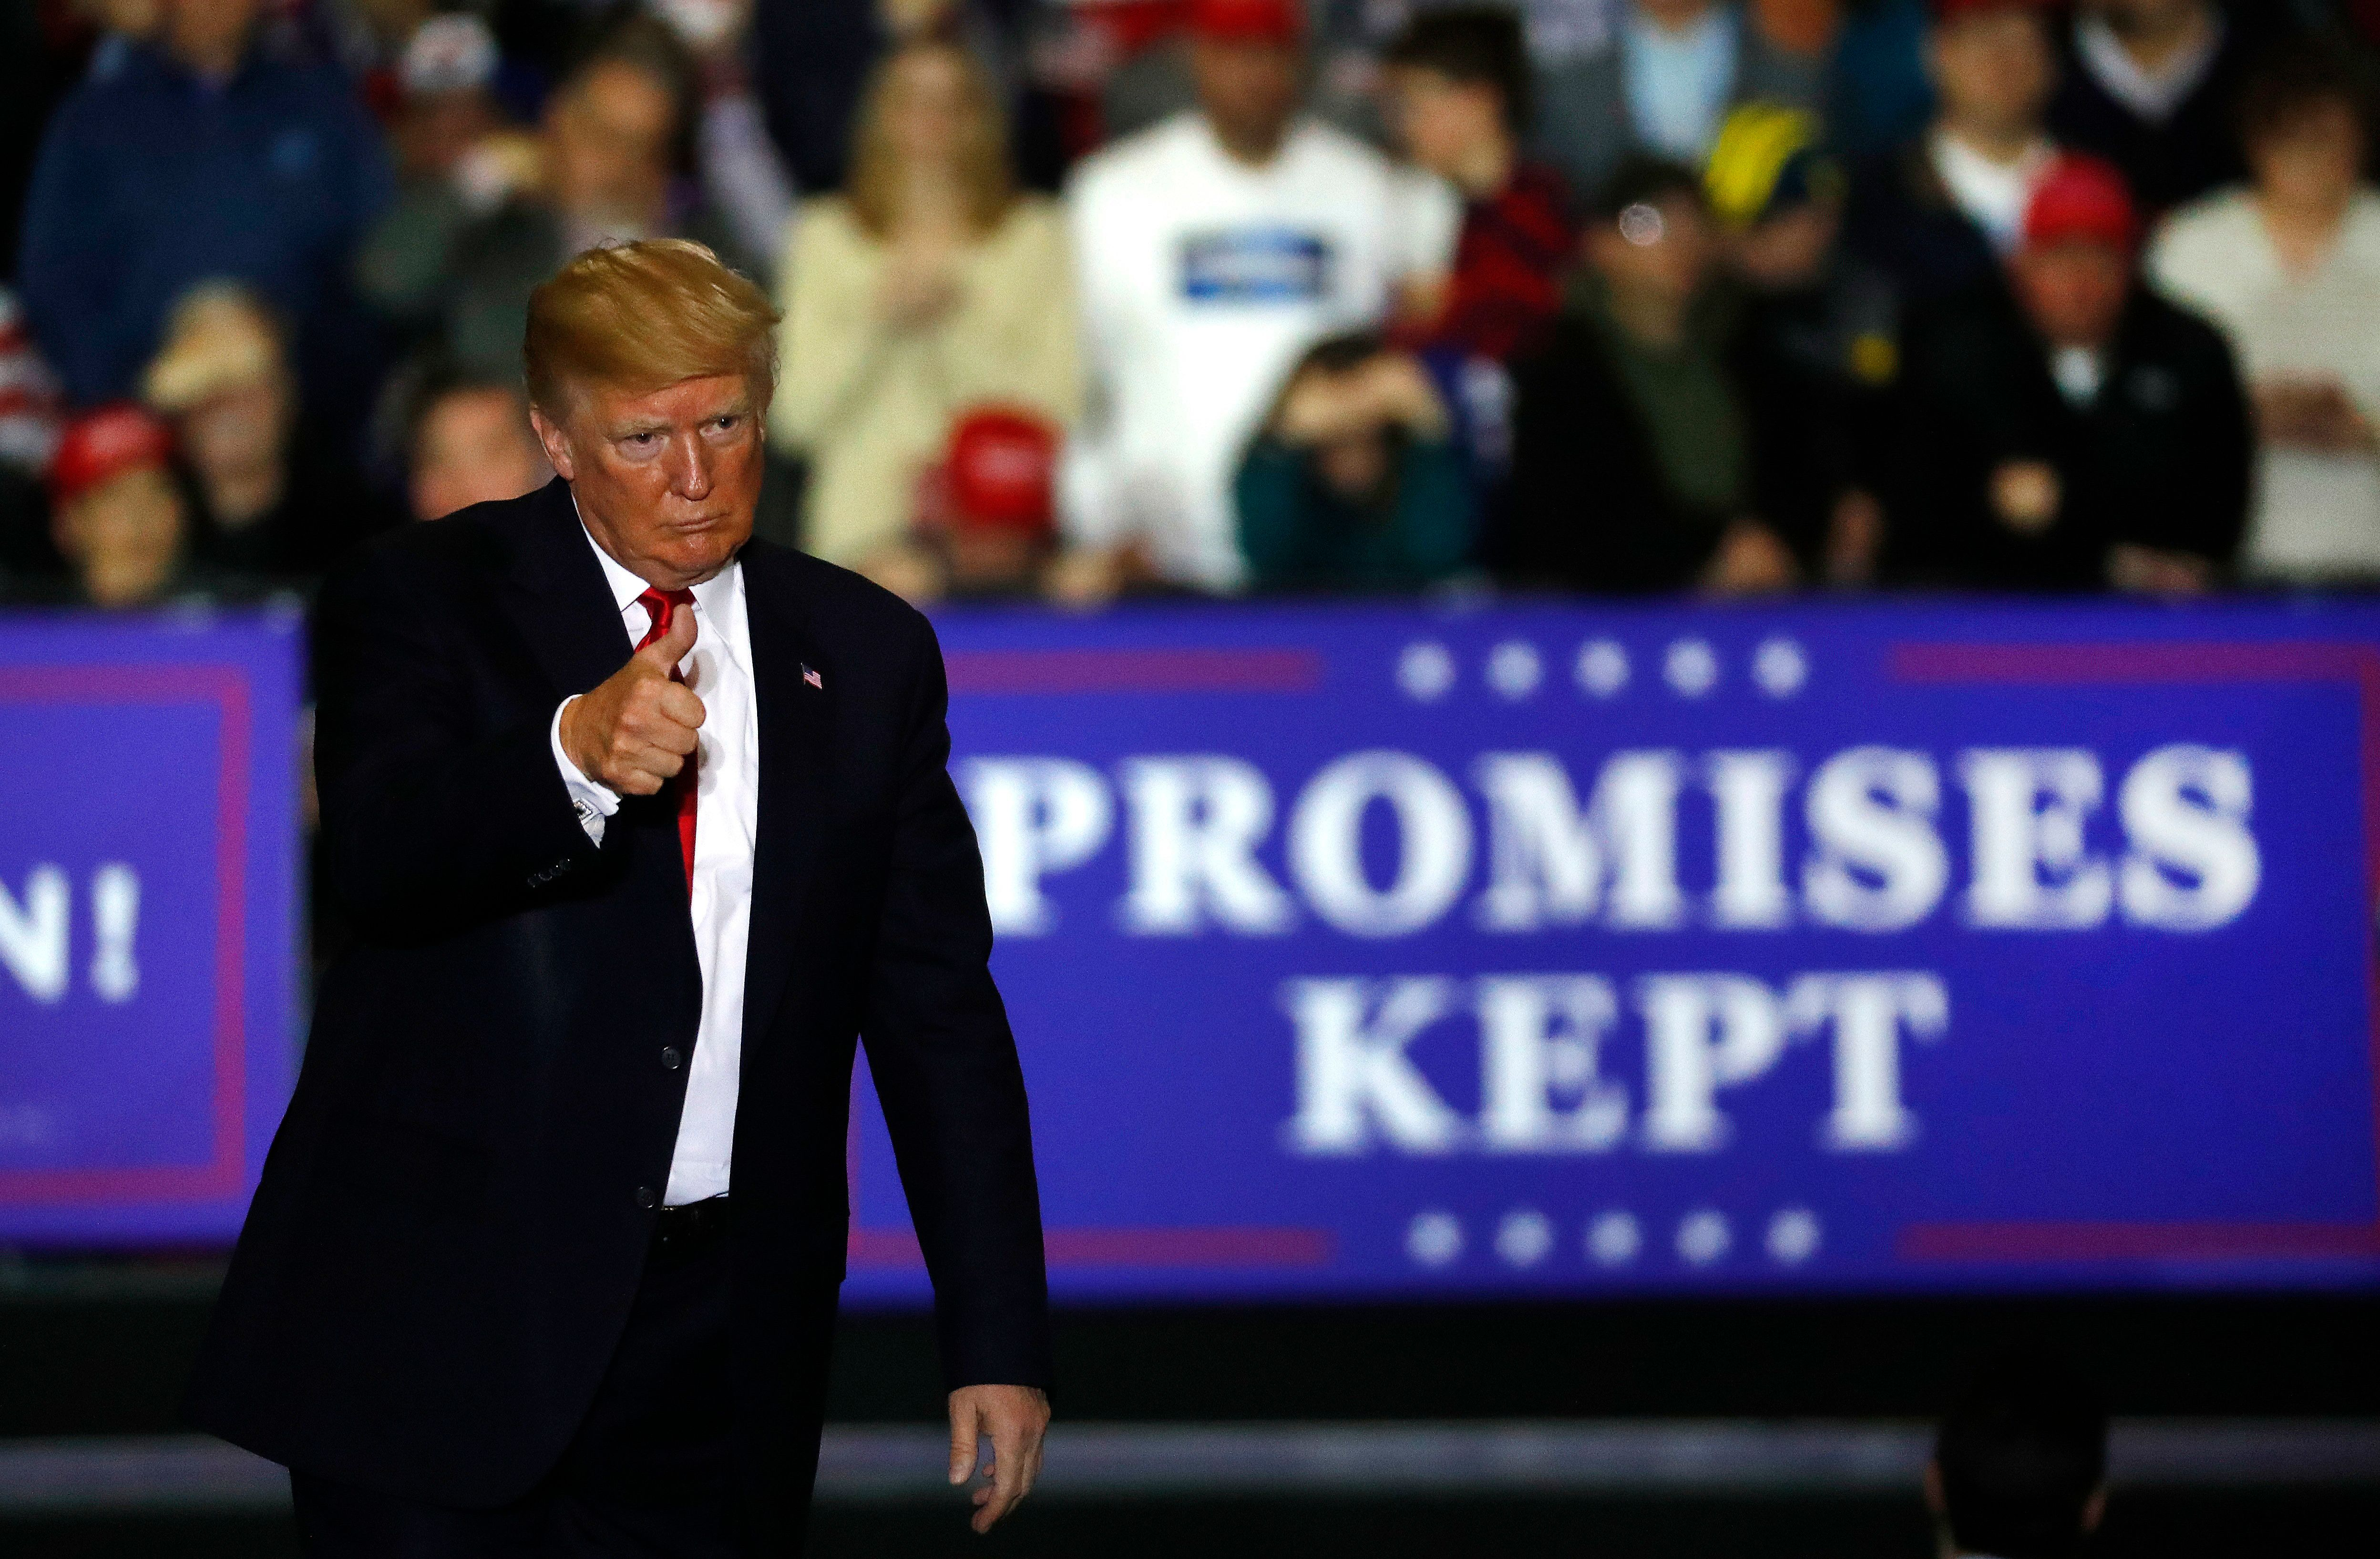 U.S. President Donald Trump gives a thumbs-up during a campaign rally in Washington Township, Mich., Saturday, April 28, 2018. (AP Photo/Paul Sancya)